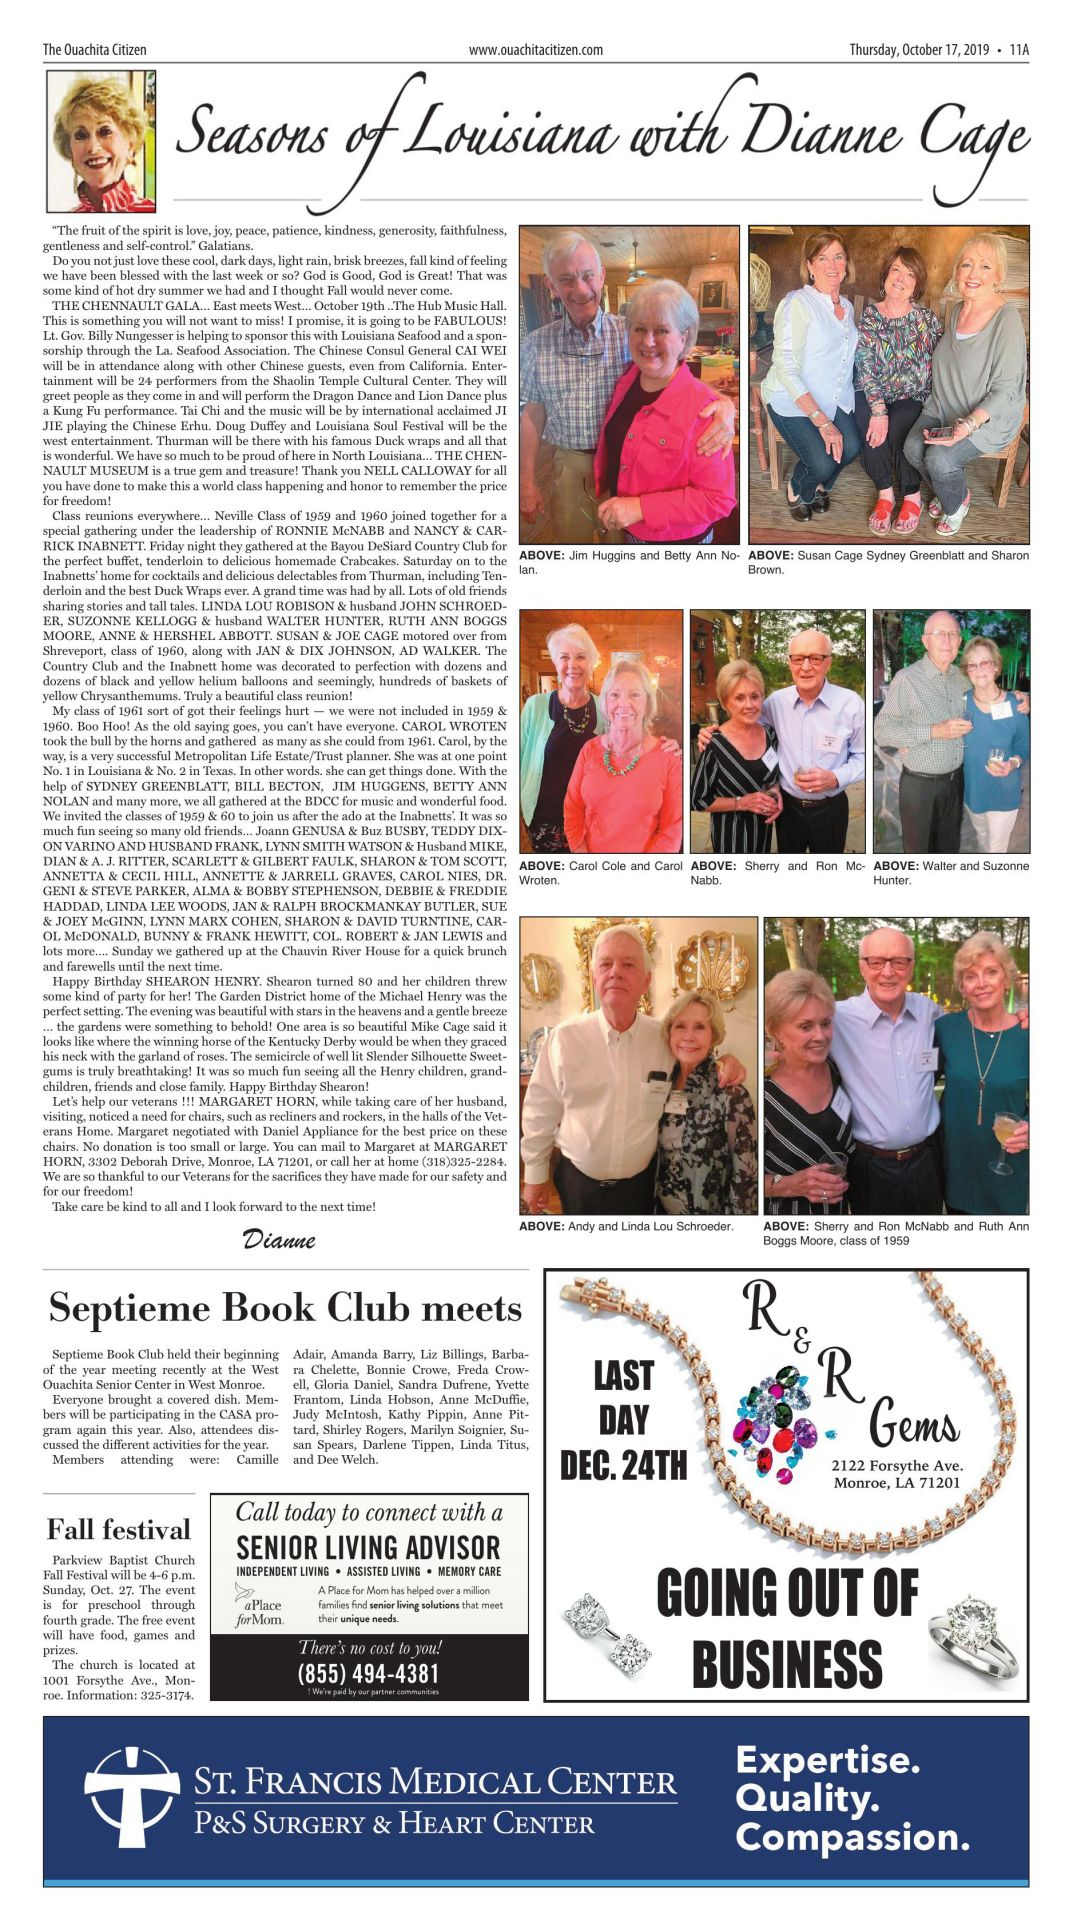 Seasons of Louisiana with Dianne Cage_October 17, 2019.pdf (3398.97 KiB)